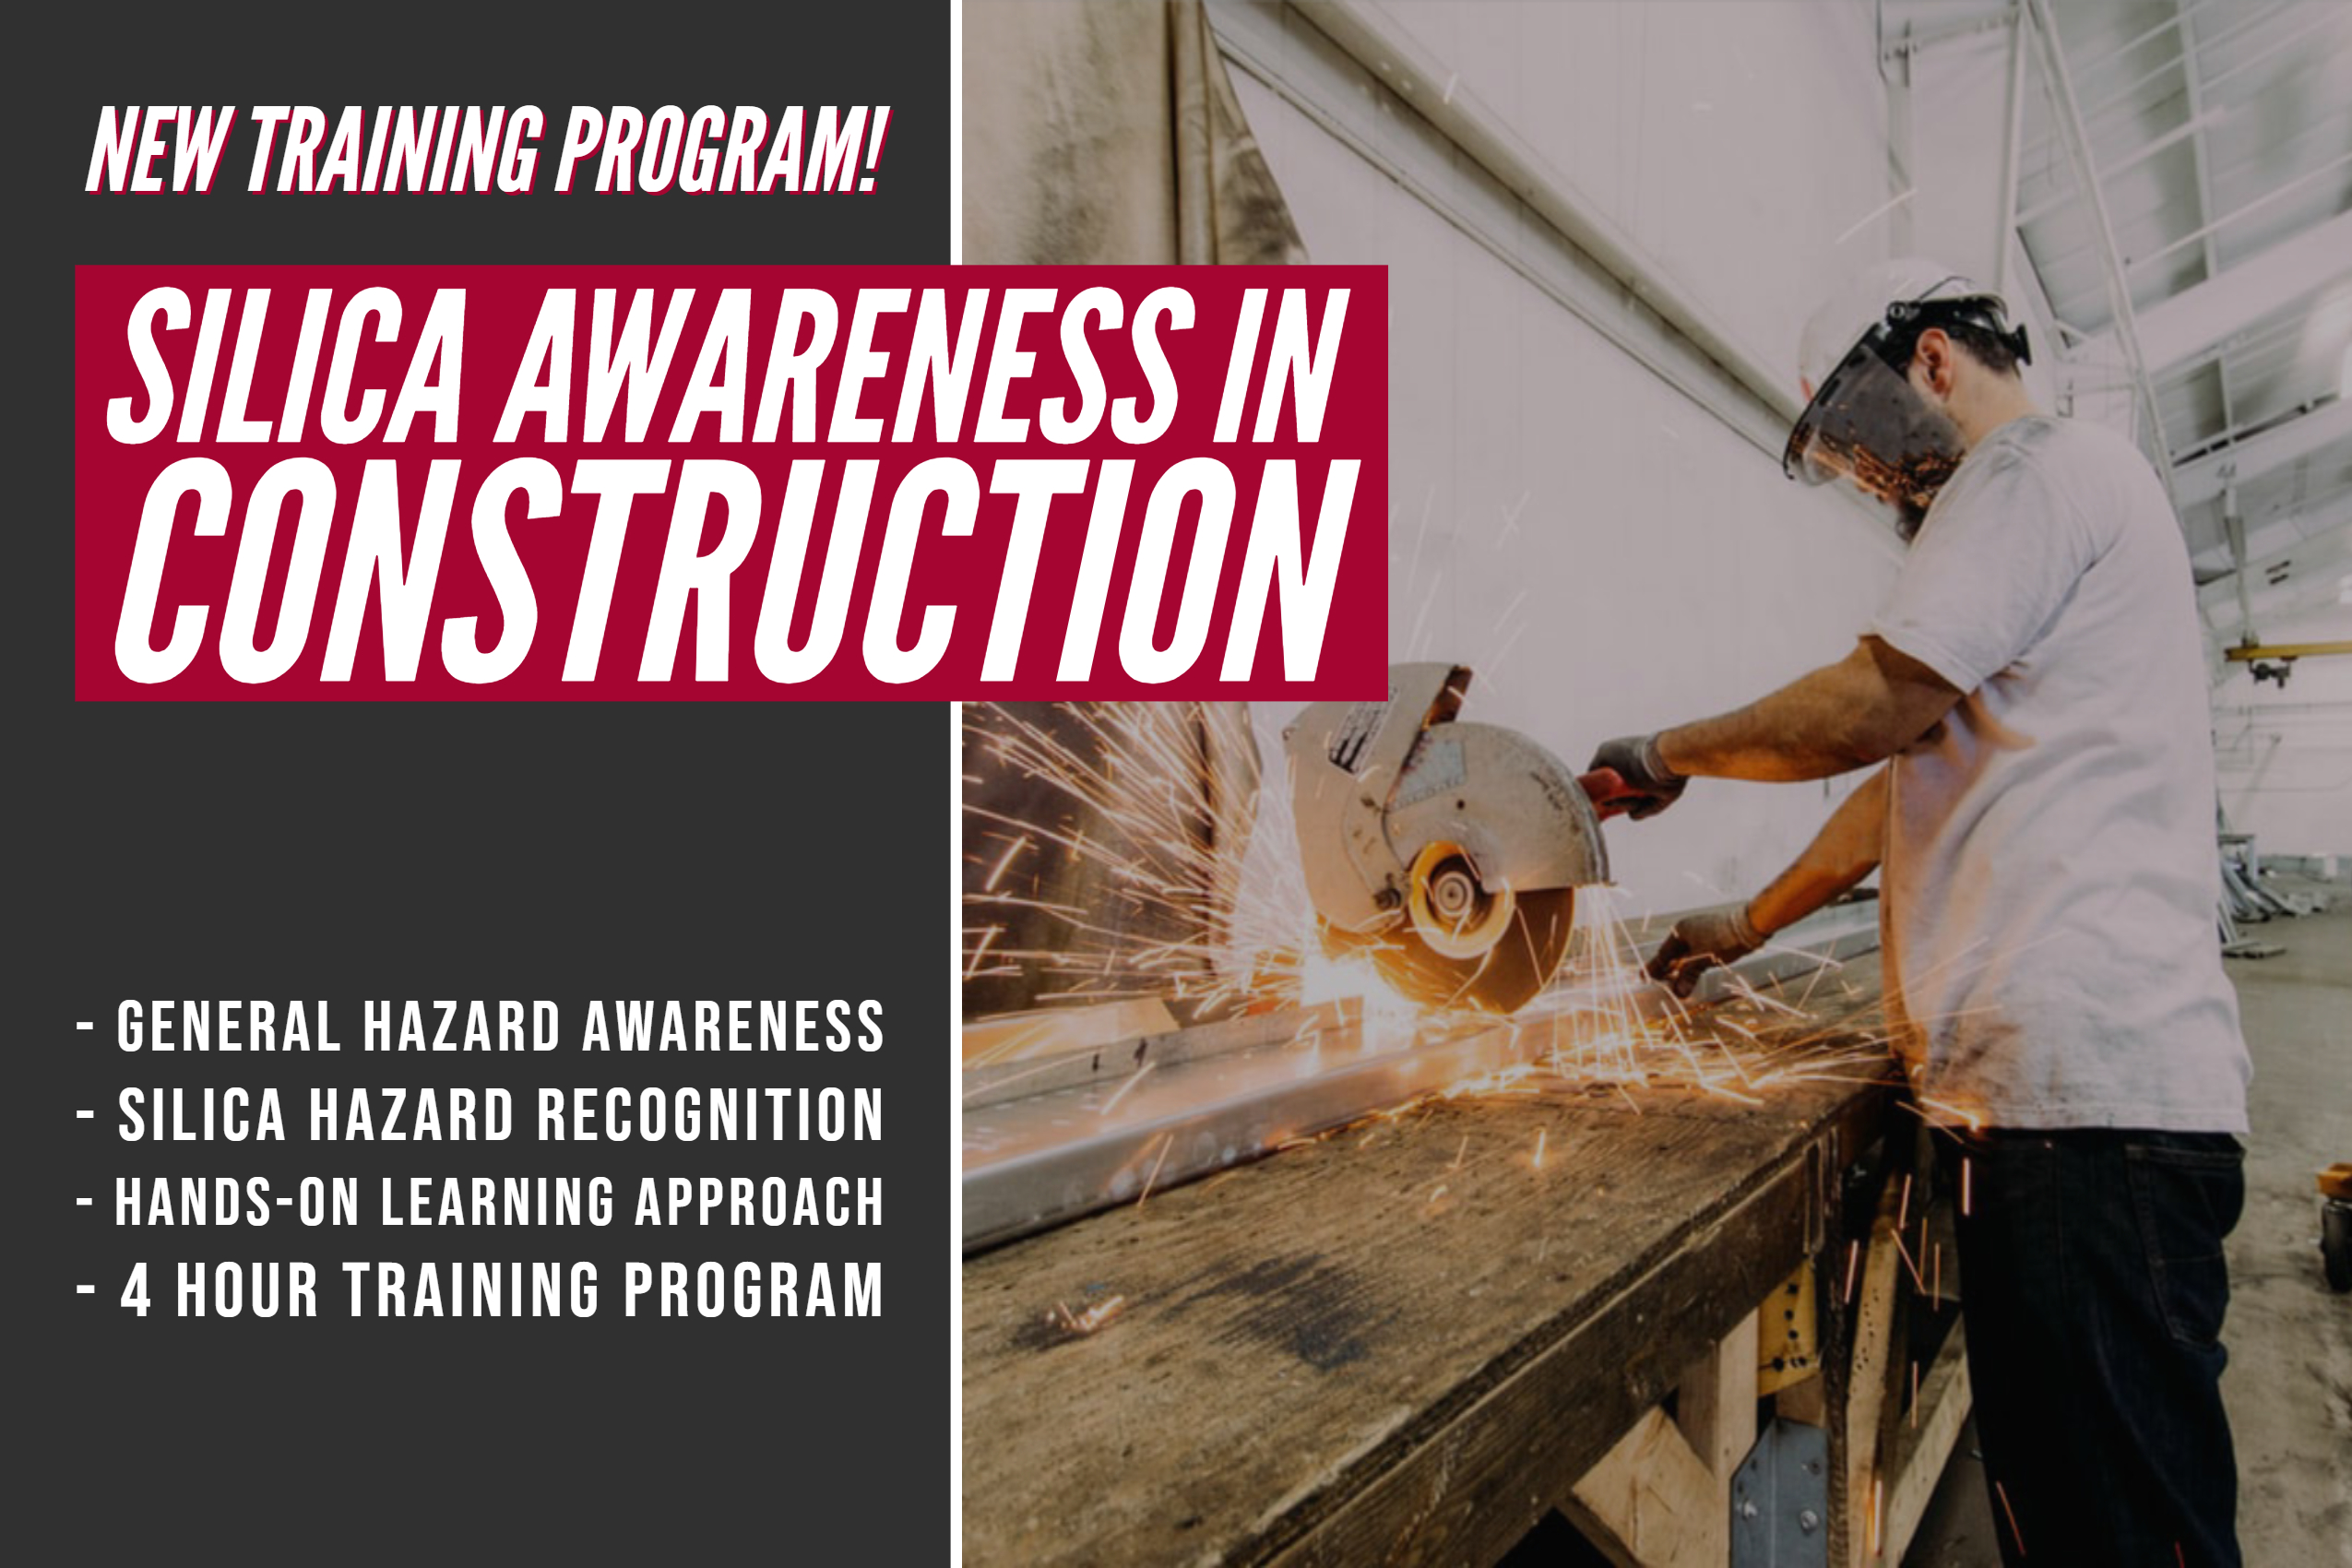 silica awareness in construction